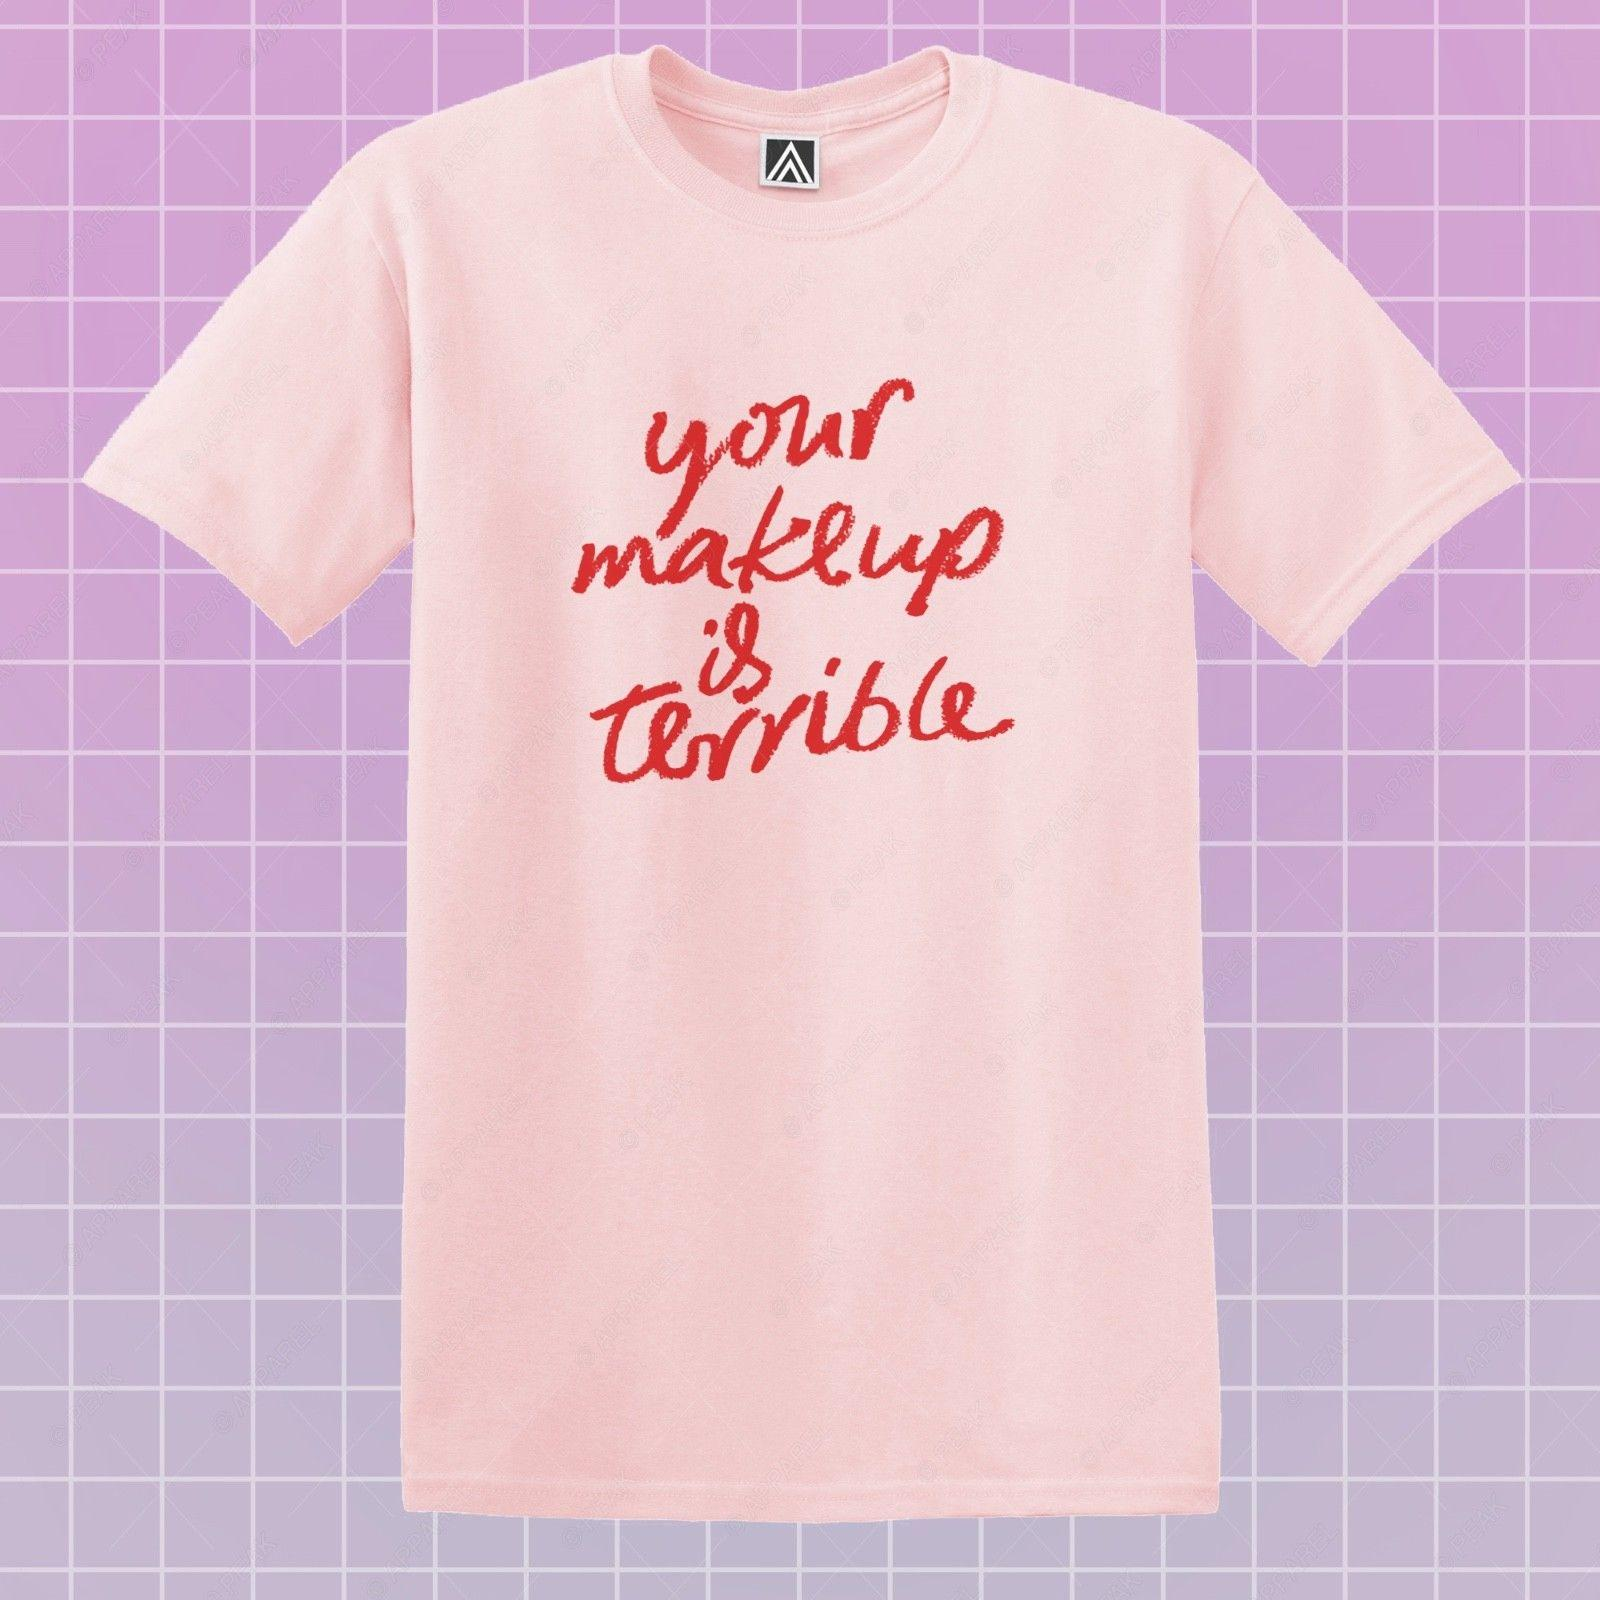 Makeup Terrible T Shirt Alaska Ru Drag Tee LGBT Race Gay Pride Bottom Queens Top Brand Shirts Jeans Print Funny Tee Shirts Mens T Shirt From Cancup, ...